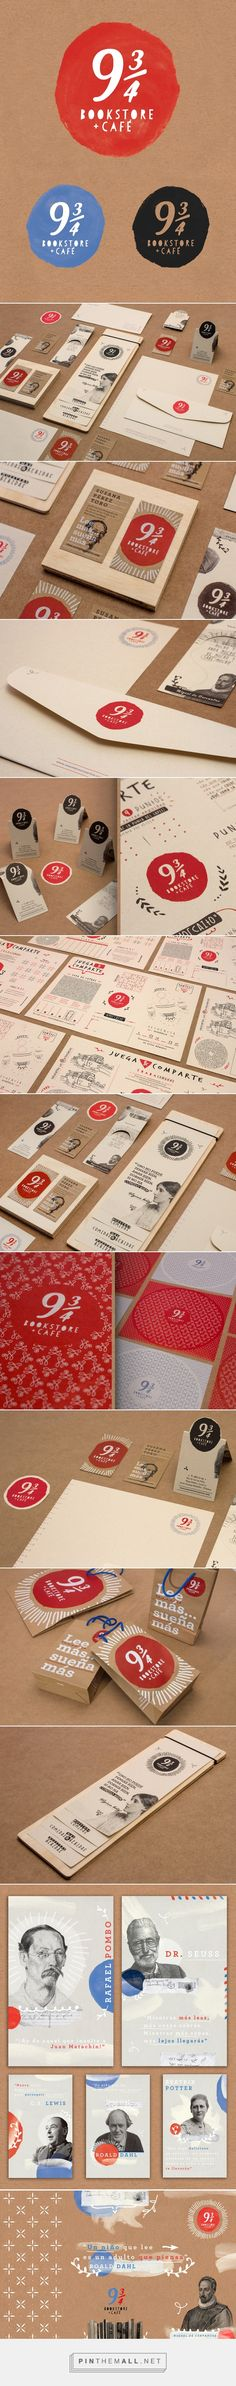 9 3/4 BOOKSTORE and CAFÉ Branding on Behance | Fivestar Branding – Design and Branding Agency & Inspiration Gallery